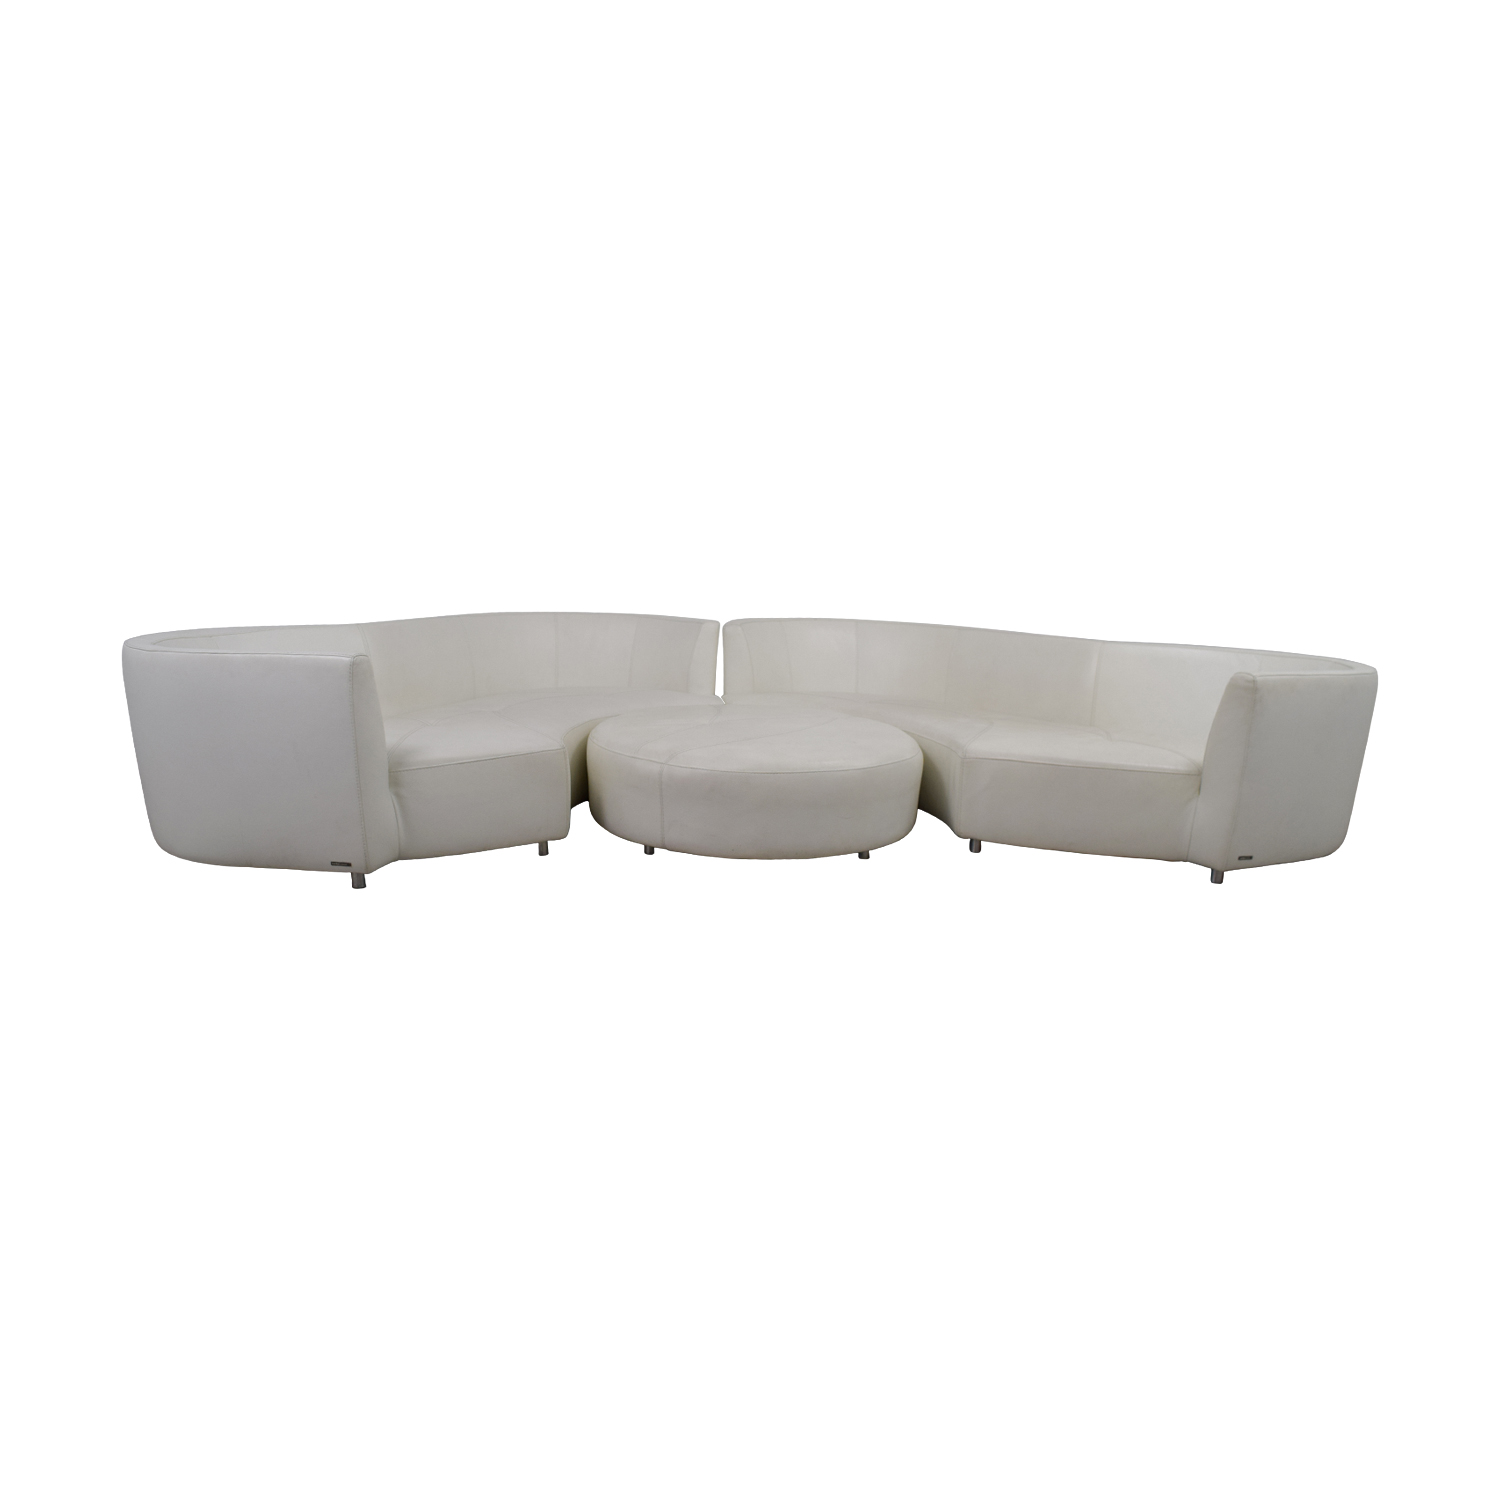 shop Roche Bobois White Digital Curved Three-Cushion Sofas with Ottoman Roche Bobois